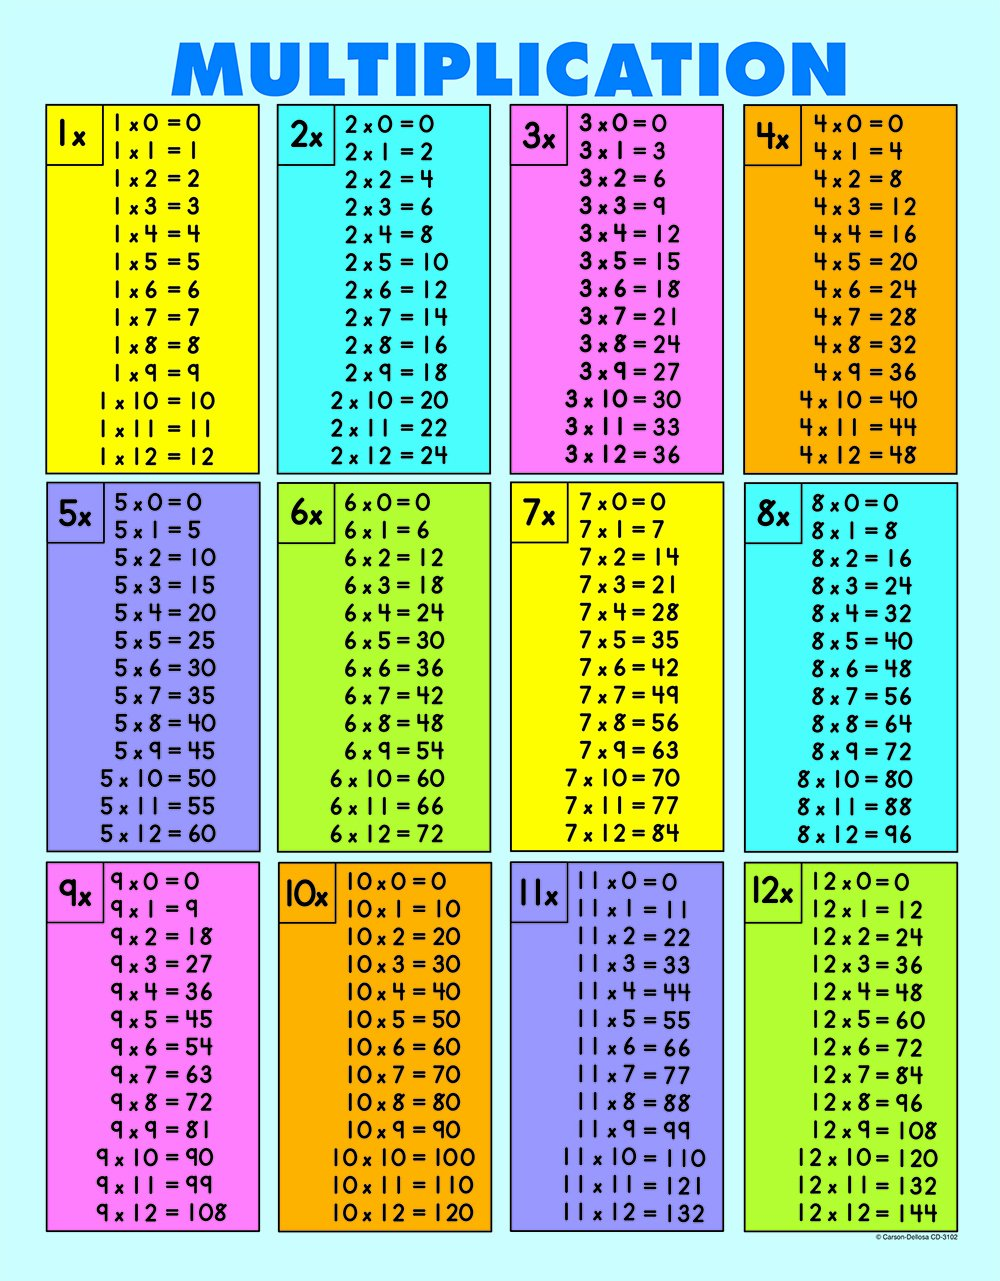 Multiplication facts through 12 popflyboys for Table 12 multiplication